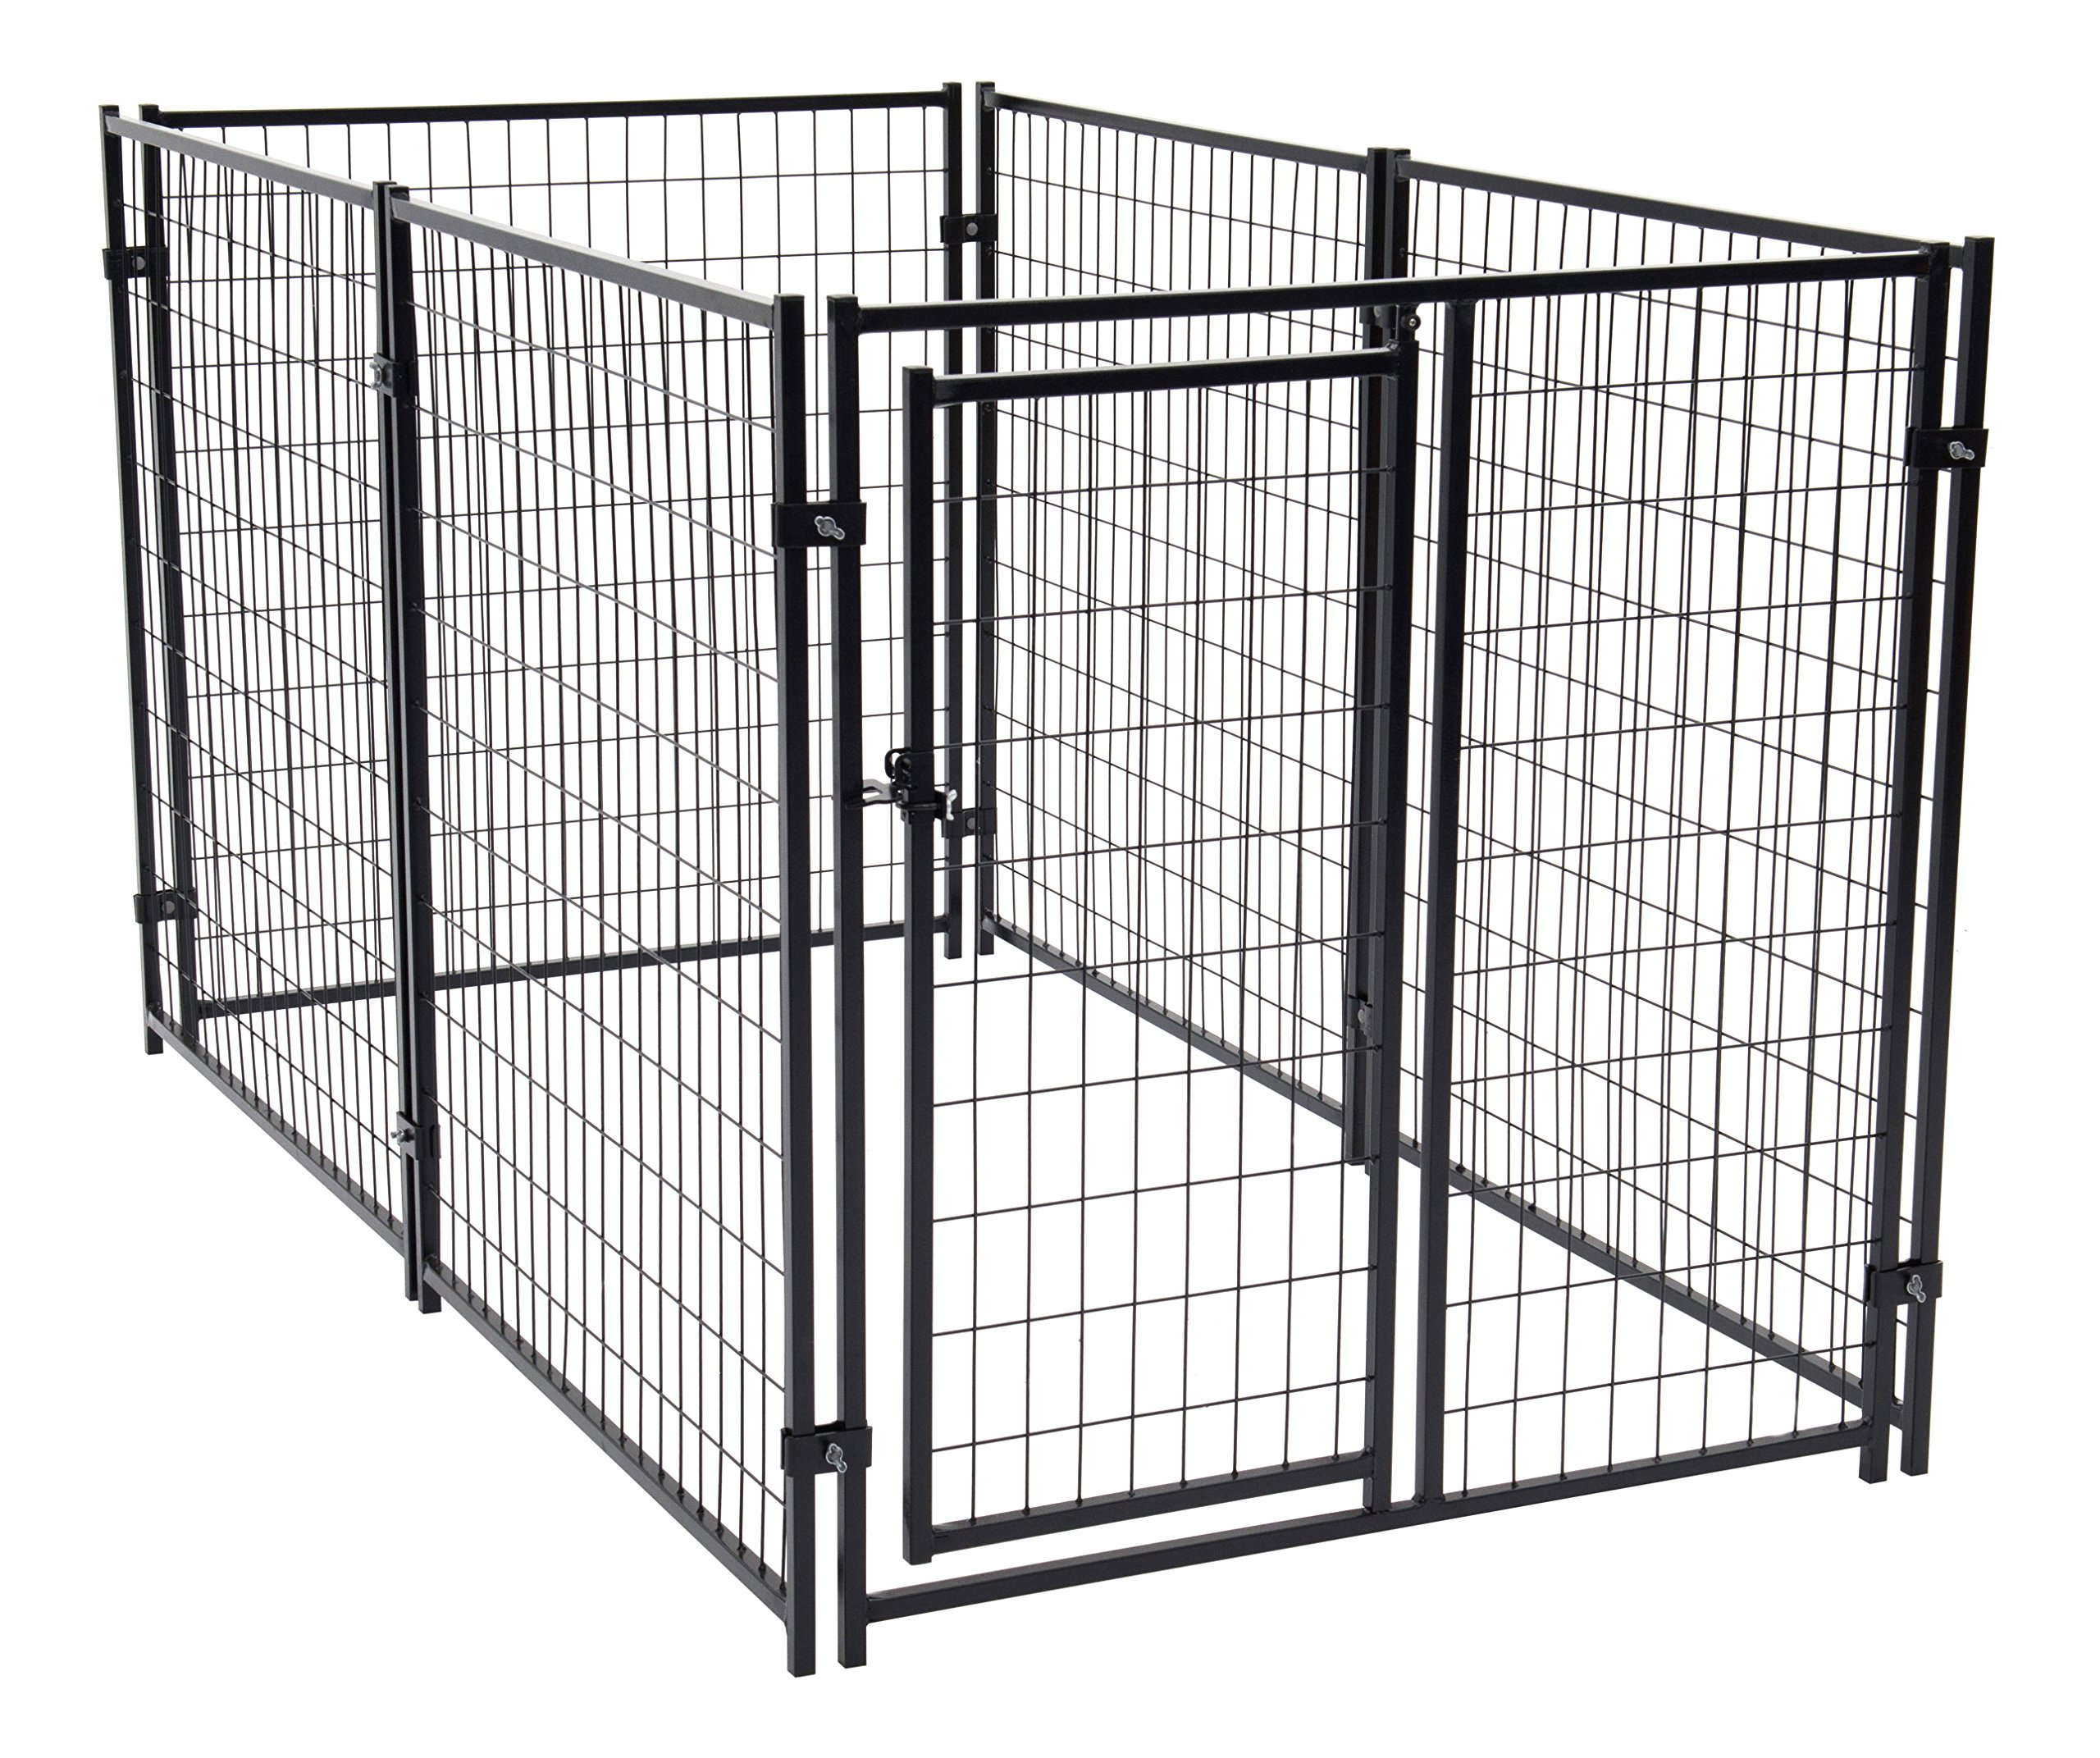 Lucky Dog CL60347 4' x 8' x 5' Heavy Duty Outdoor Pet Playpen, Large